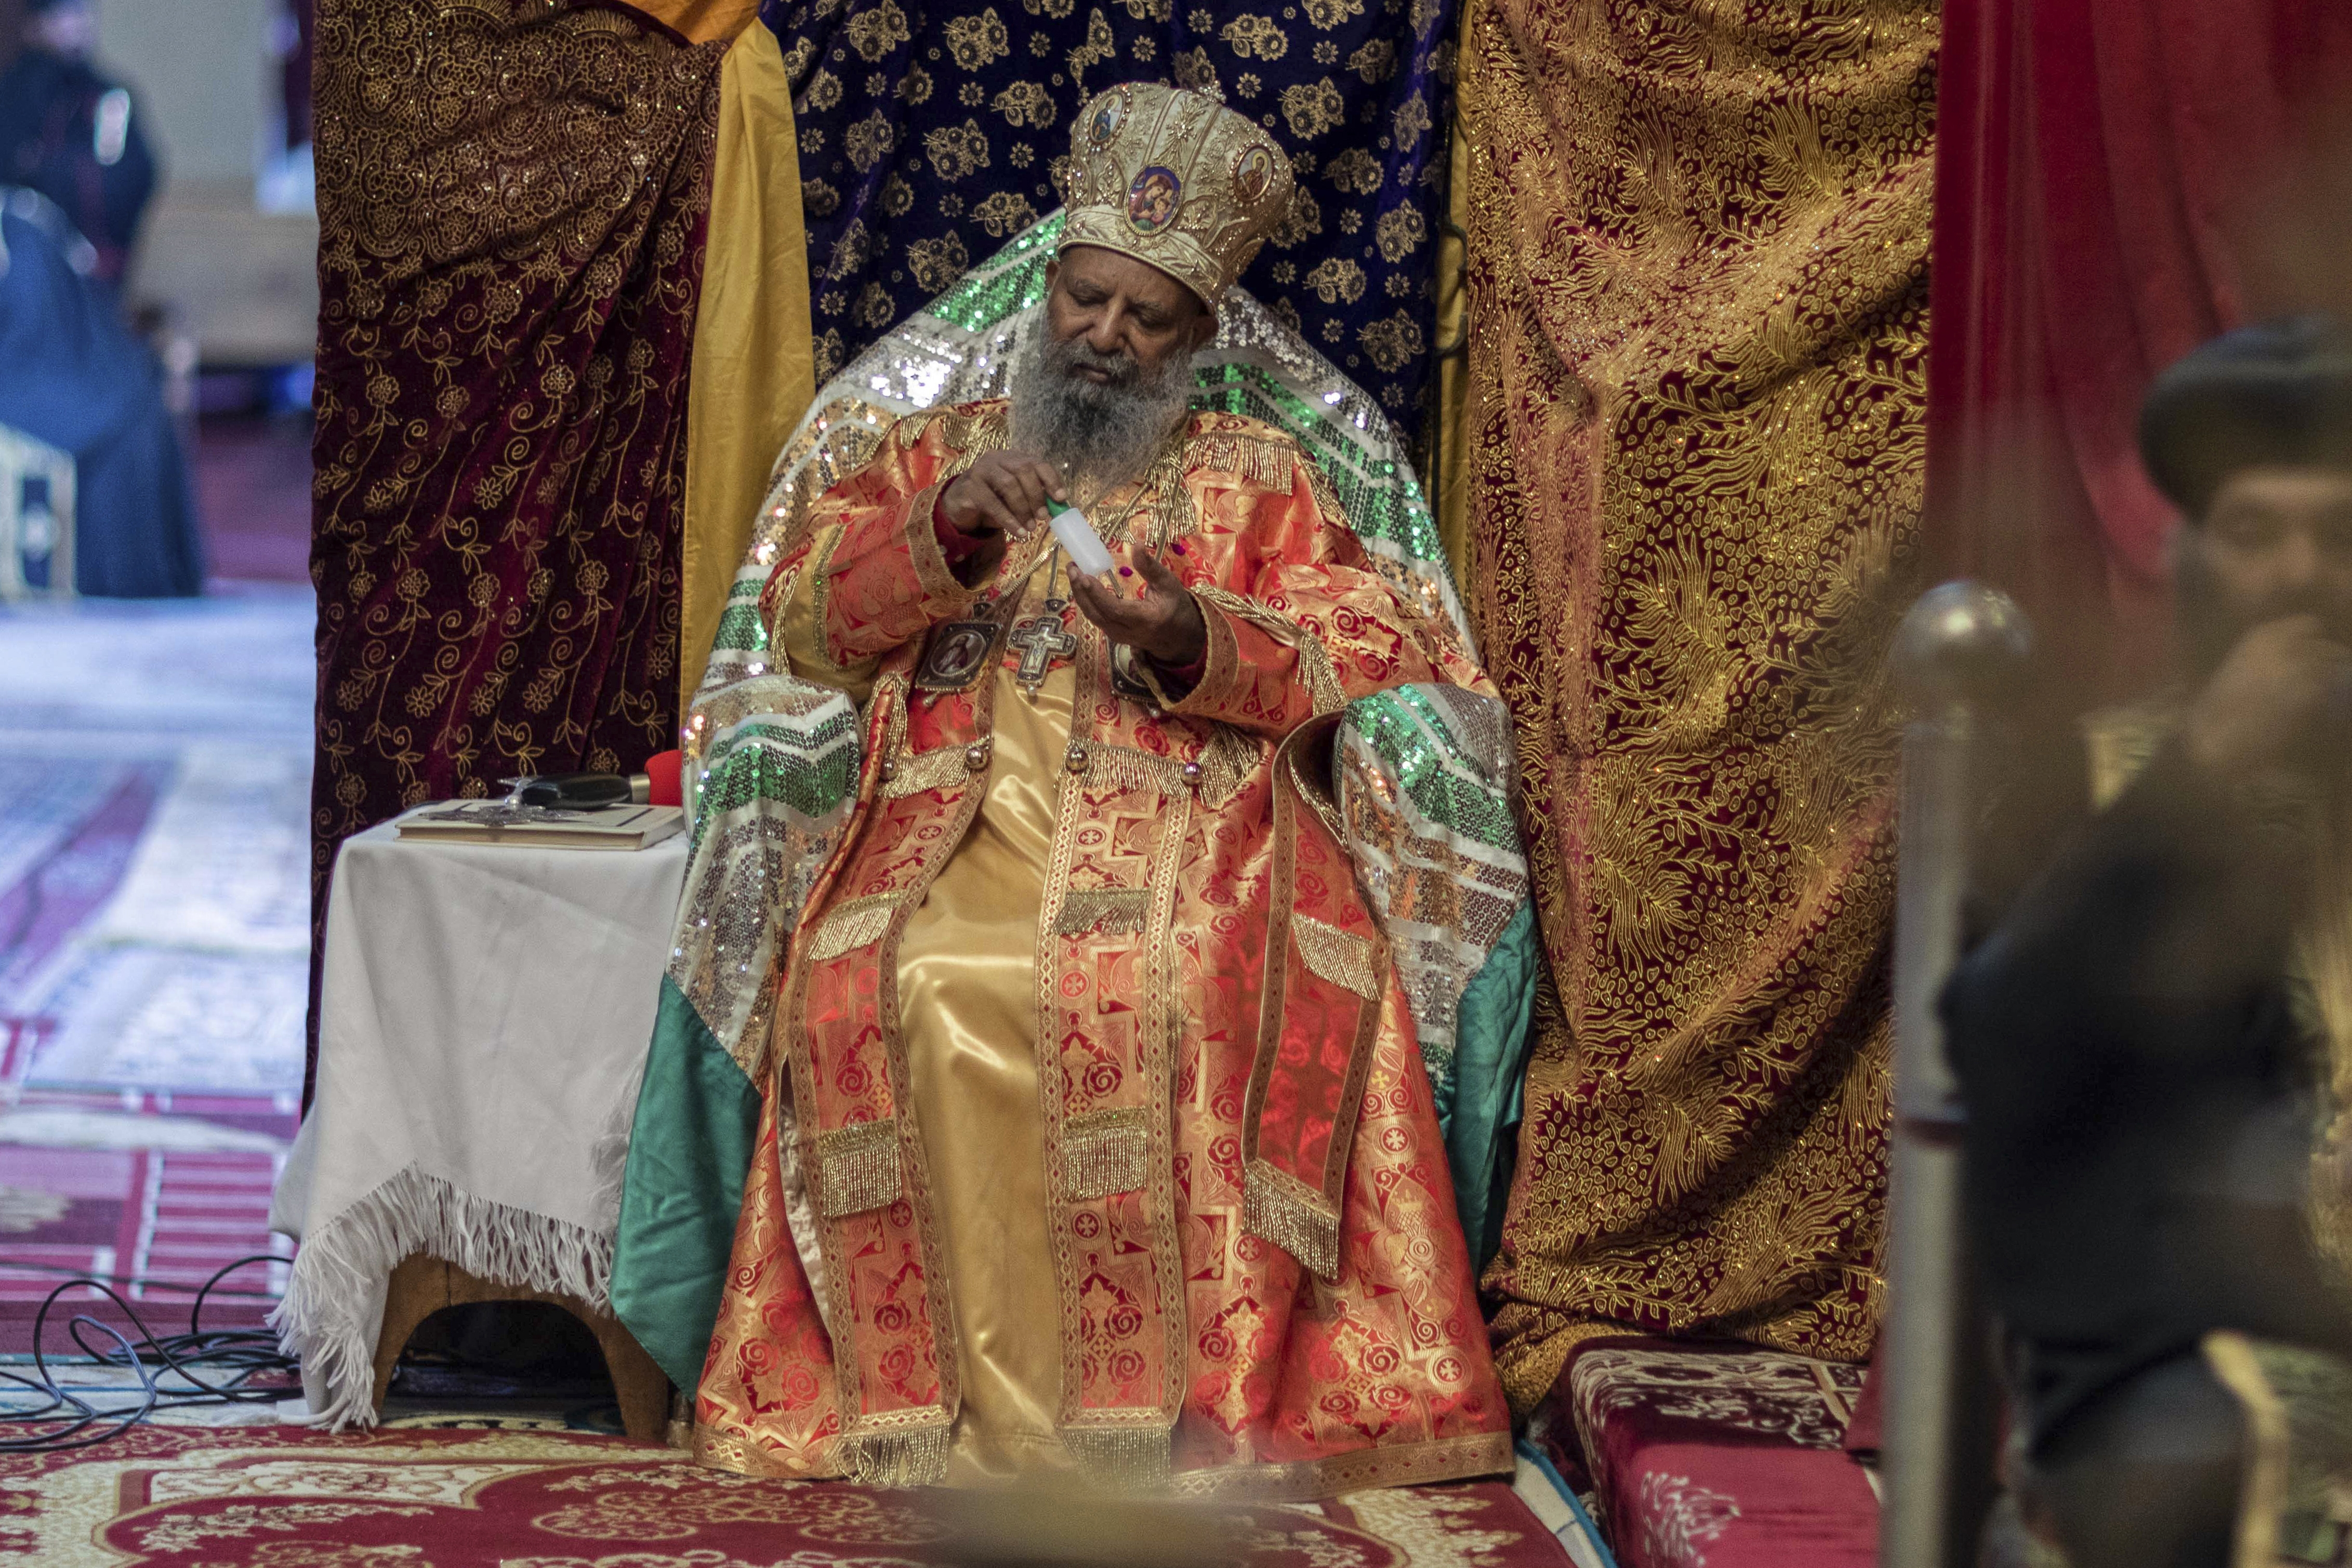 Abune Mathias at the Holy Trinity Cathedral in Addis Ababa, Ethiopia